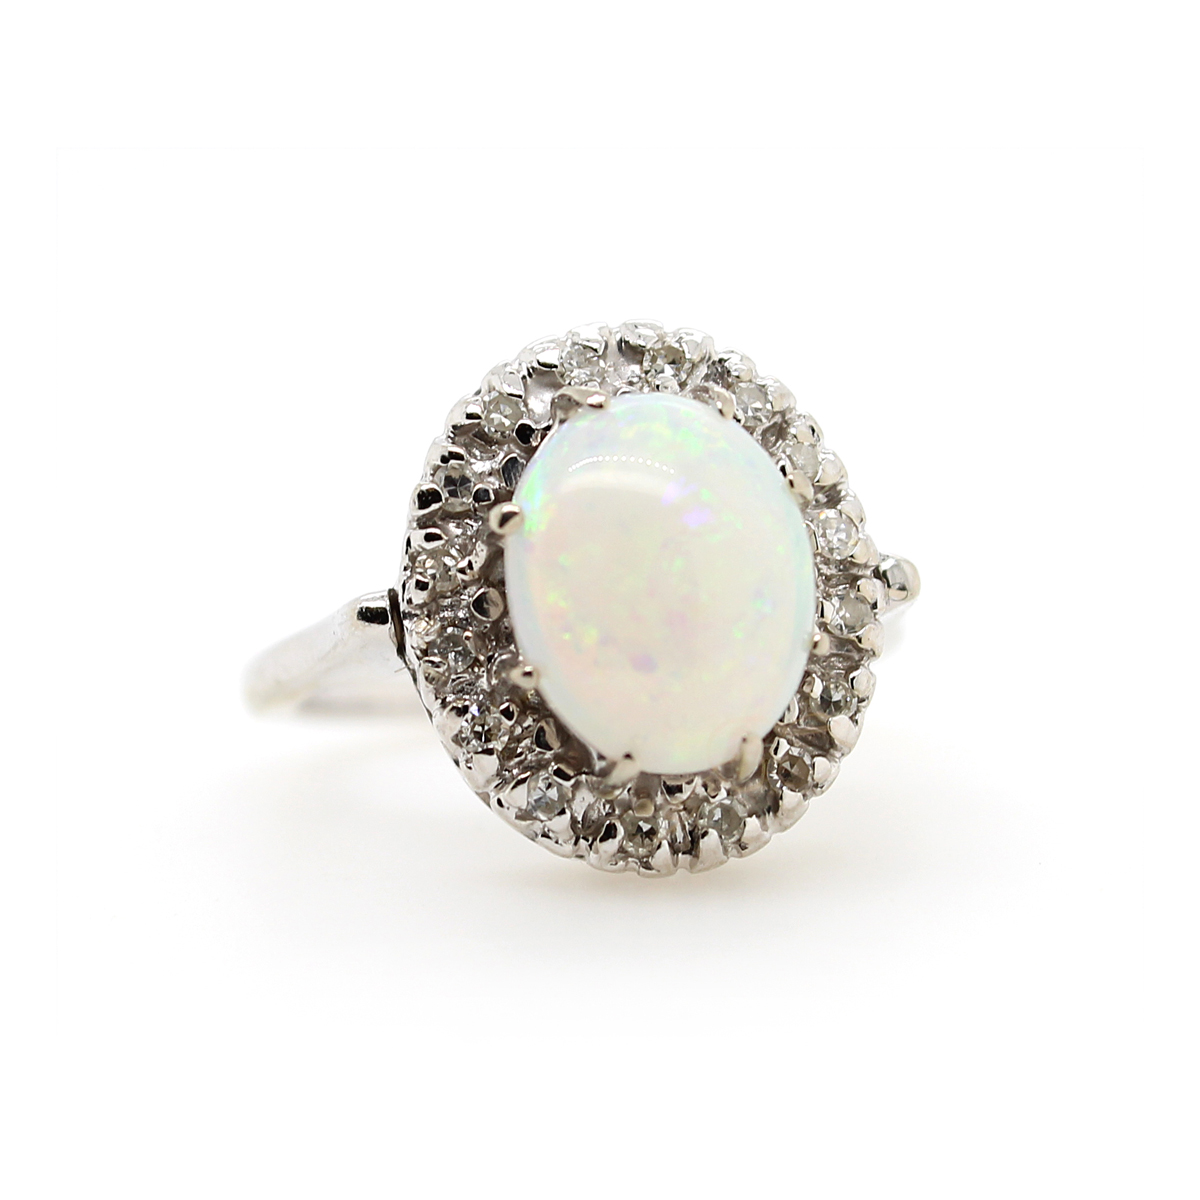 Vintage 14 Karat White Gold Oval Opal and Diamond Ring